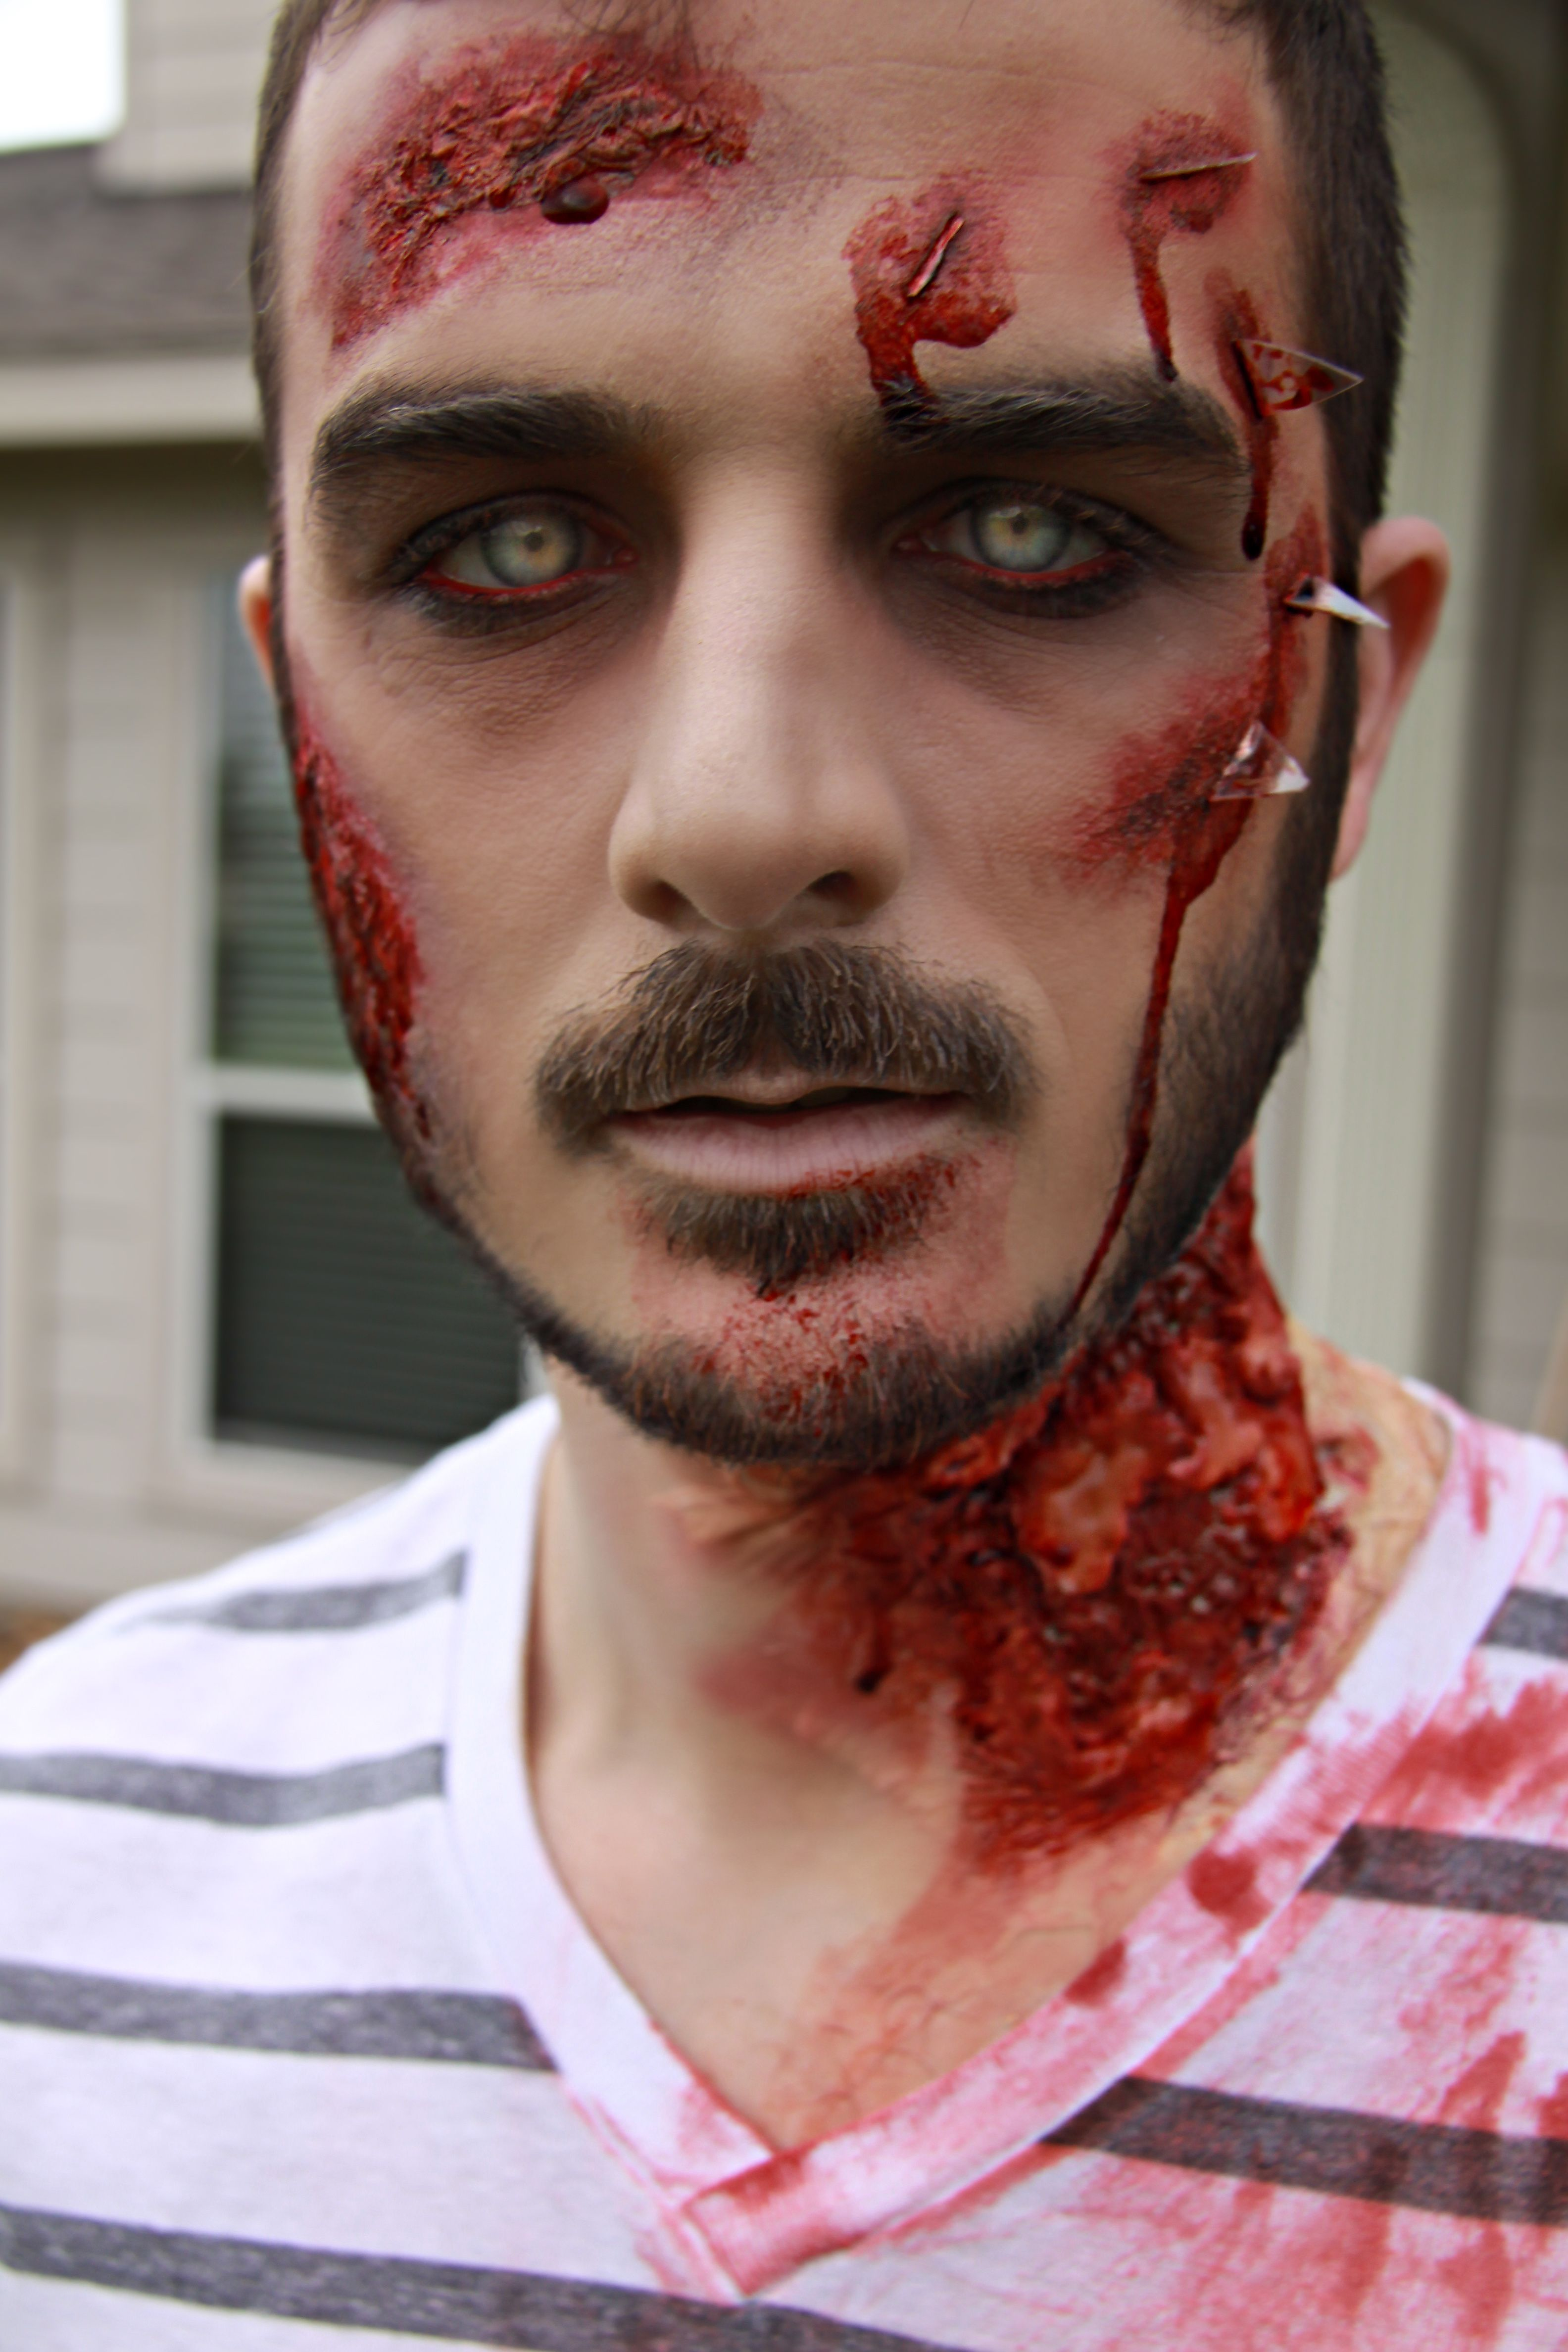 Pin by Corrine Elizabeth on Party Ideas/Holidays Pinterest - Quick Halloween Makeup Ideas For Guys